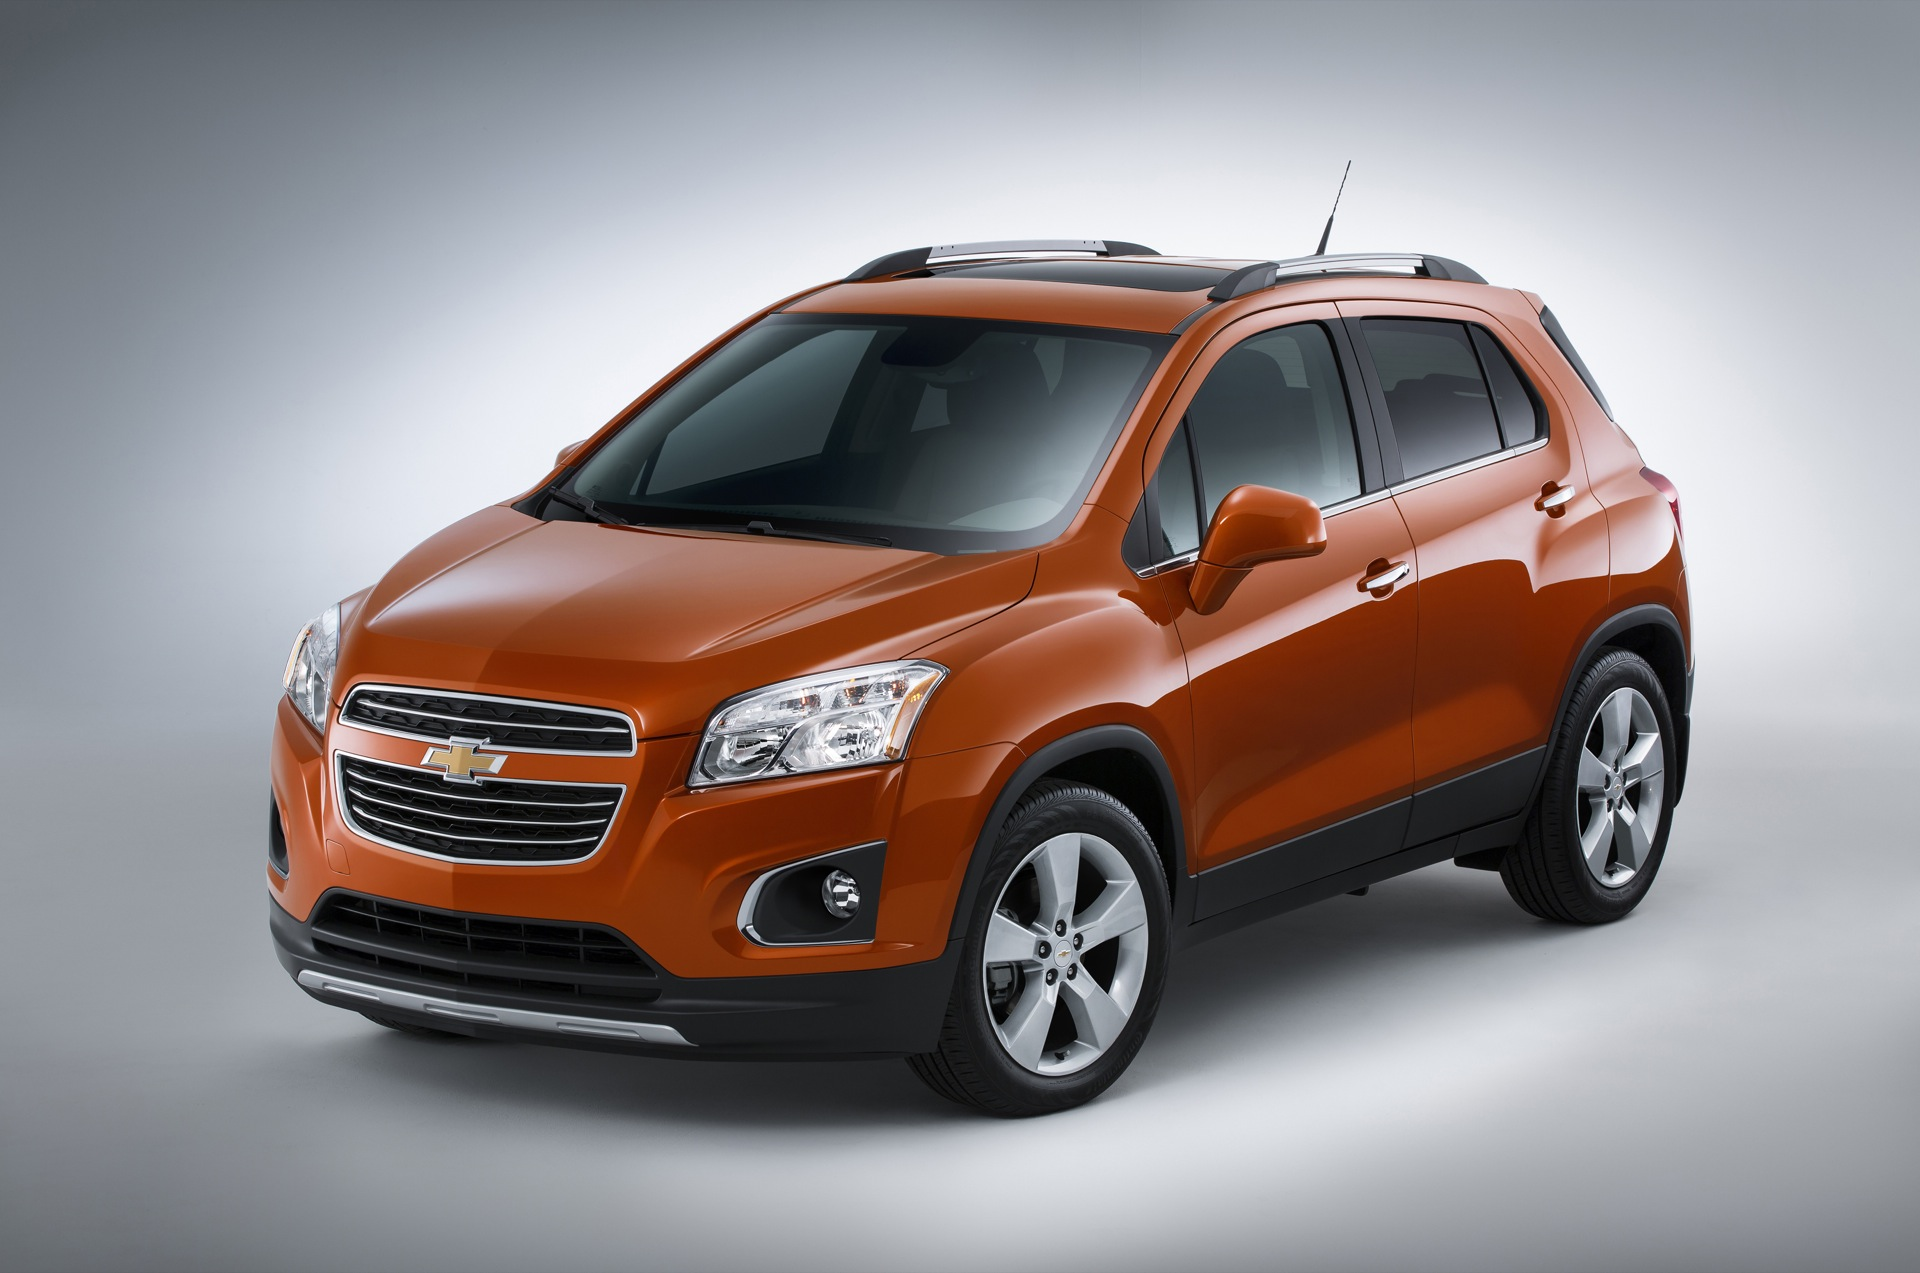 2015 Chevrolet Trax Chevy Review Ratings Specs Prices